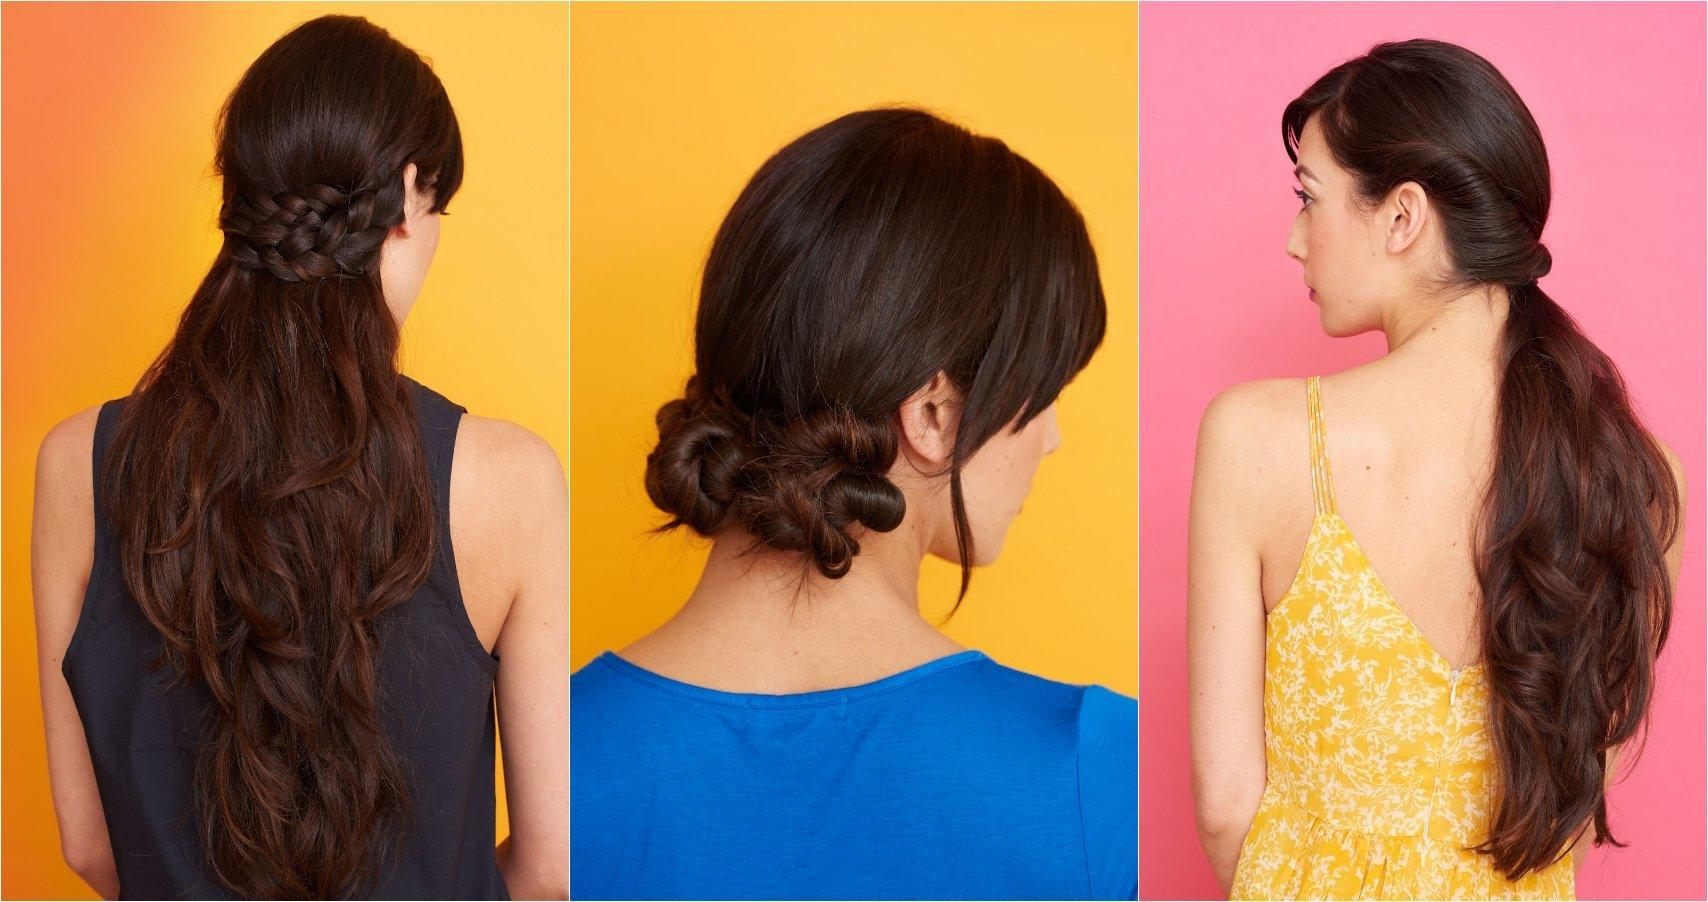 10+ Easy Helmet-Friendly Hairstyle Tutorials For Looking Stylish ...